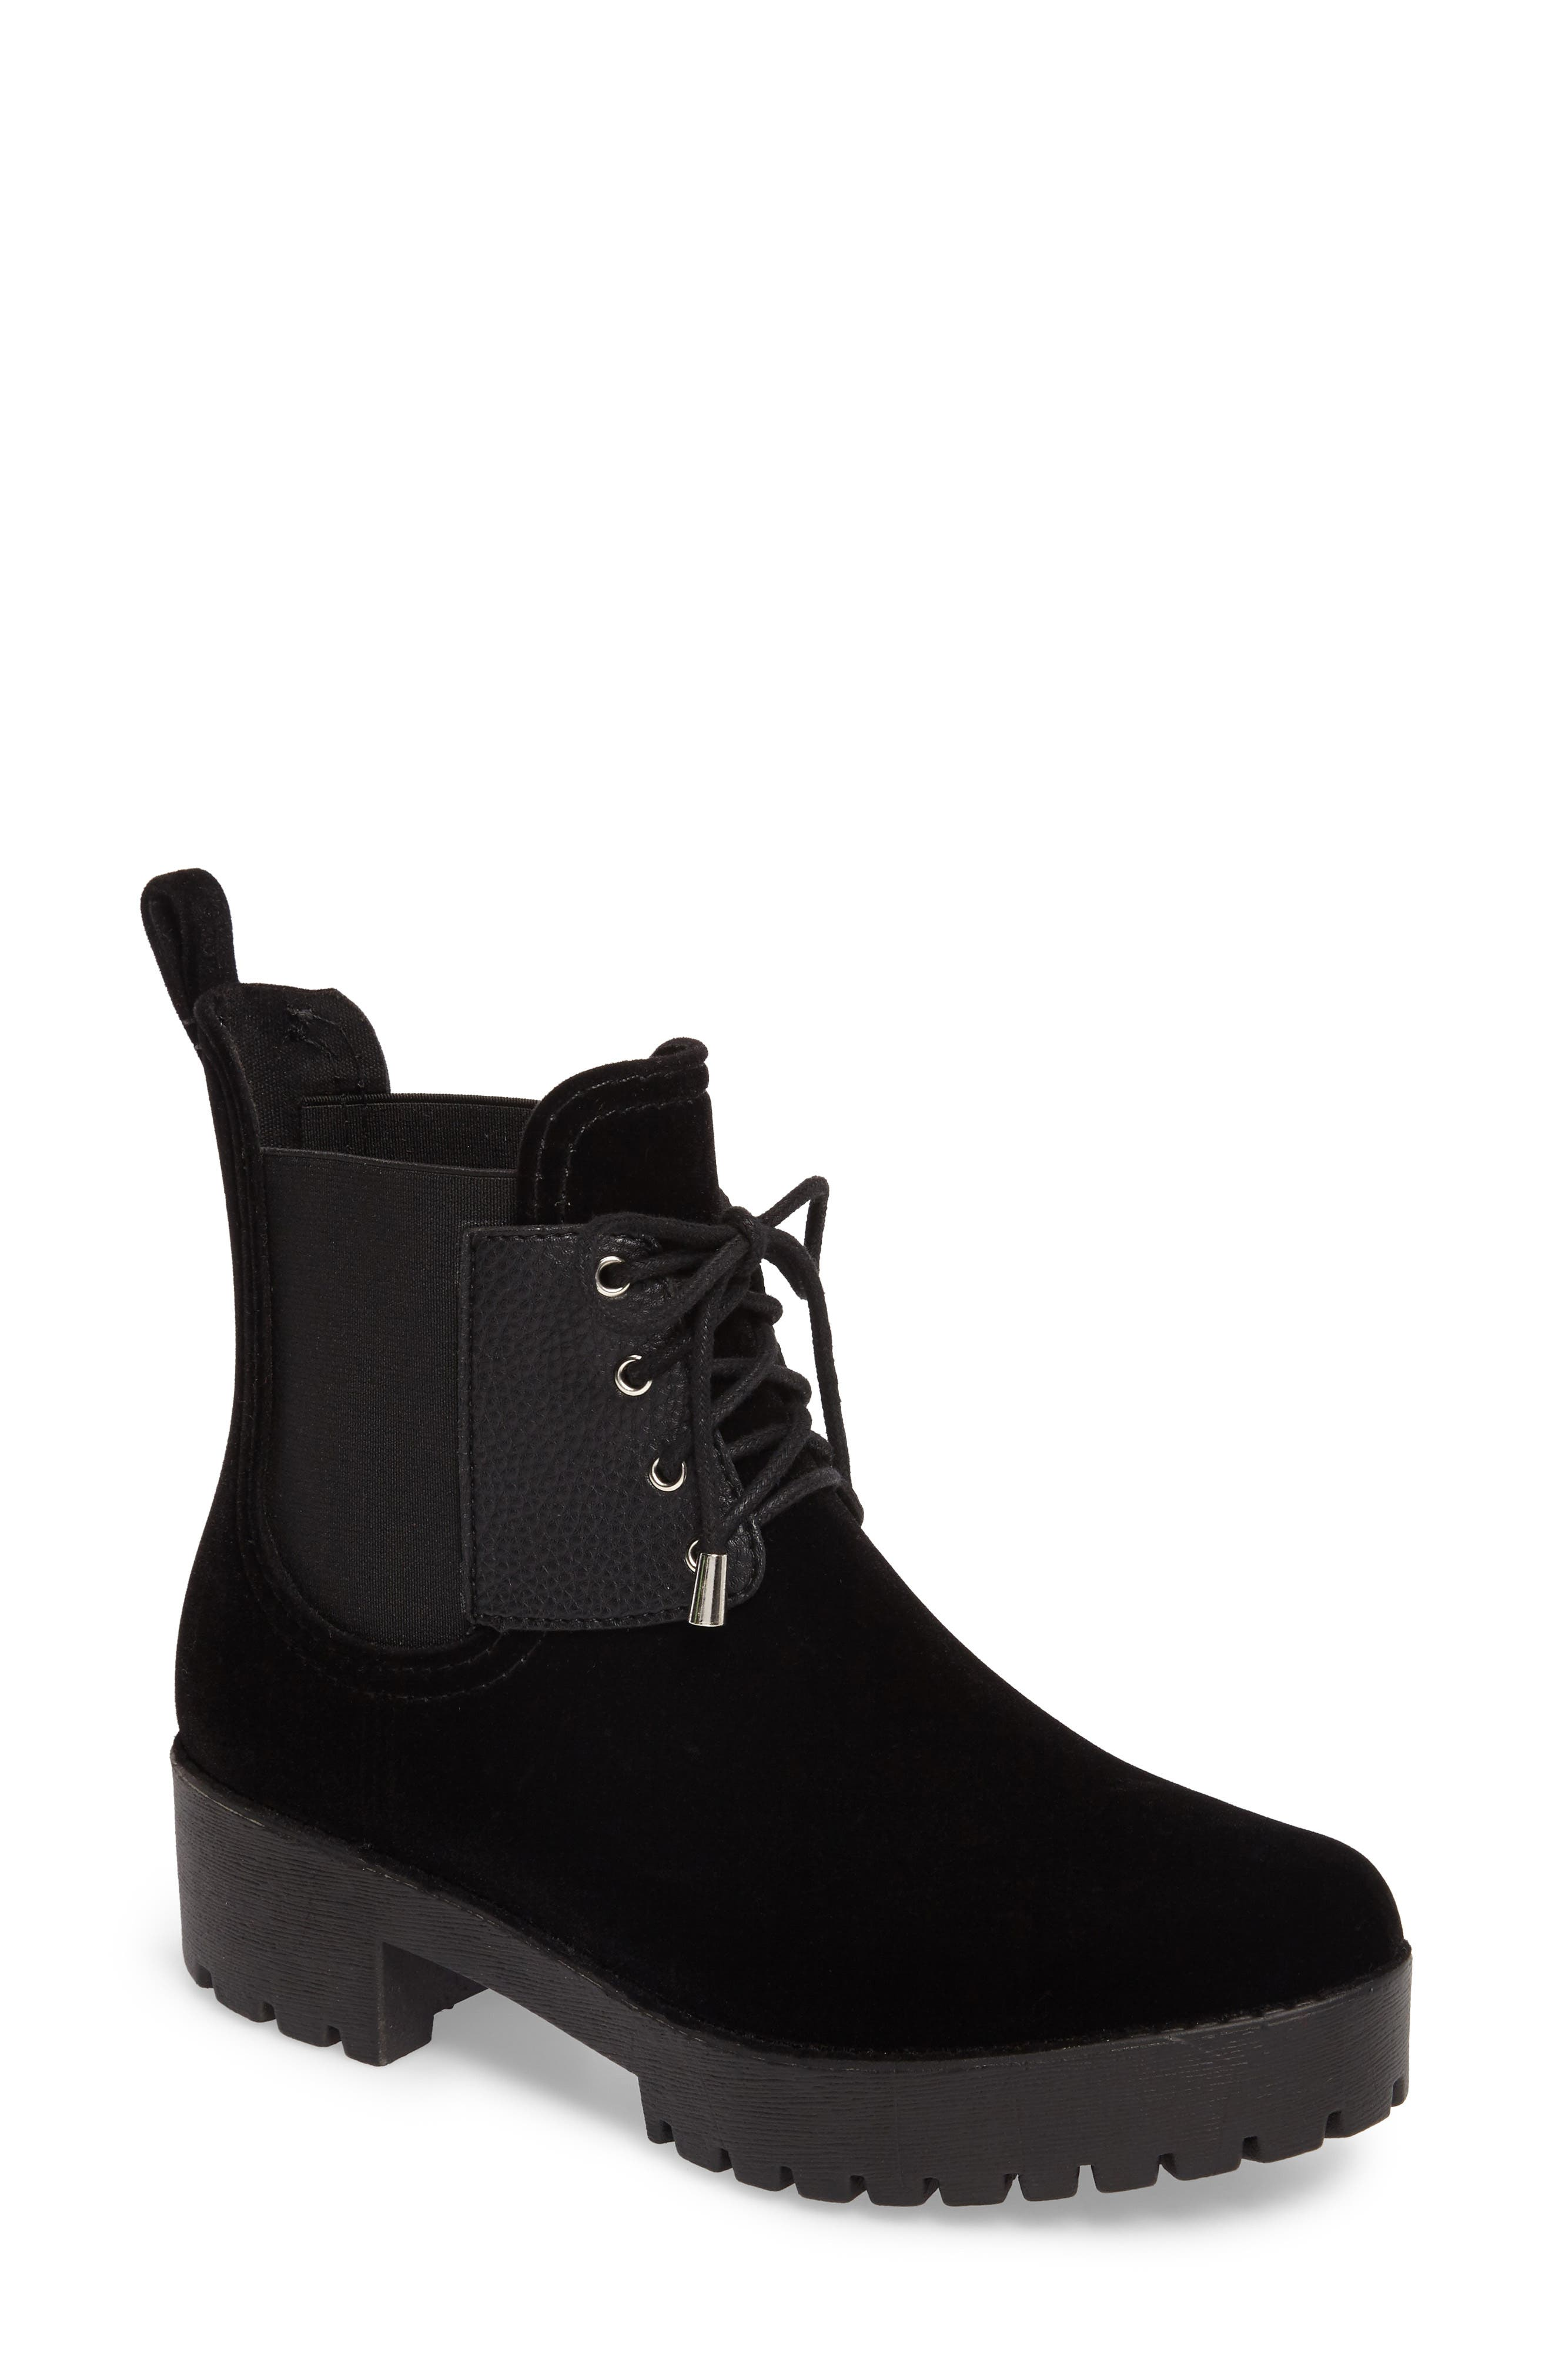 Leeds Lace-Up Waterproof Boot,                         Main,                         color, Black